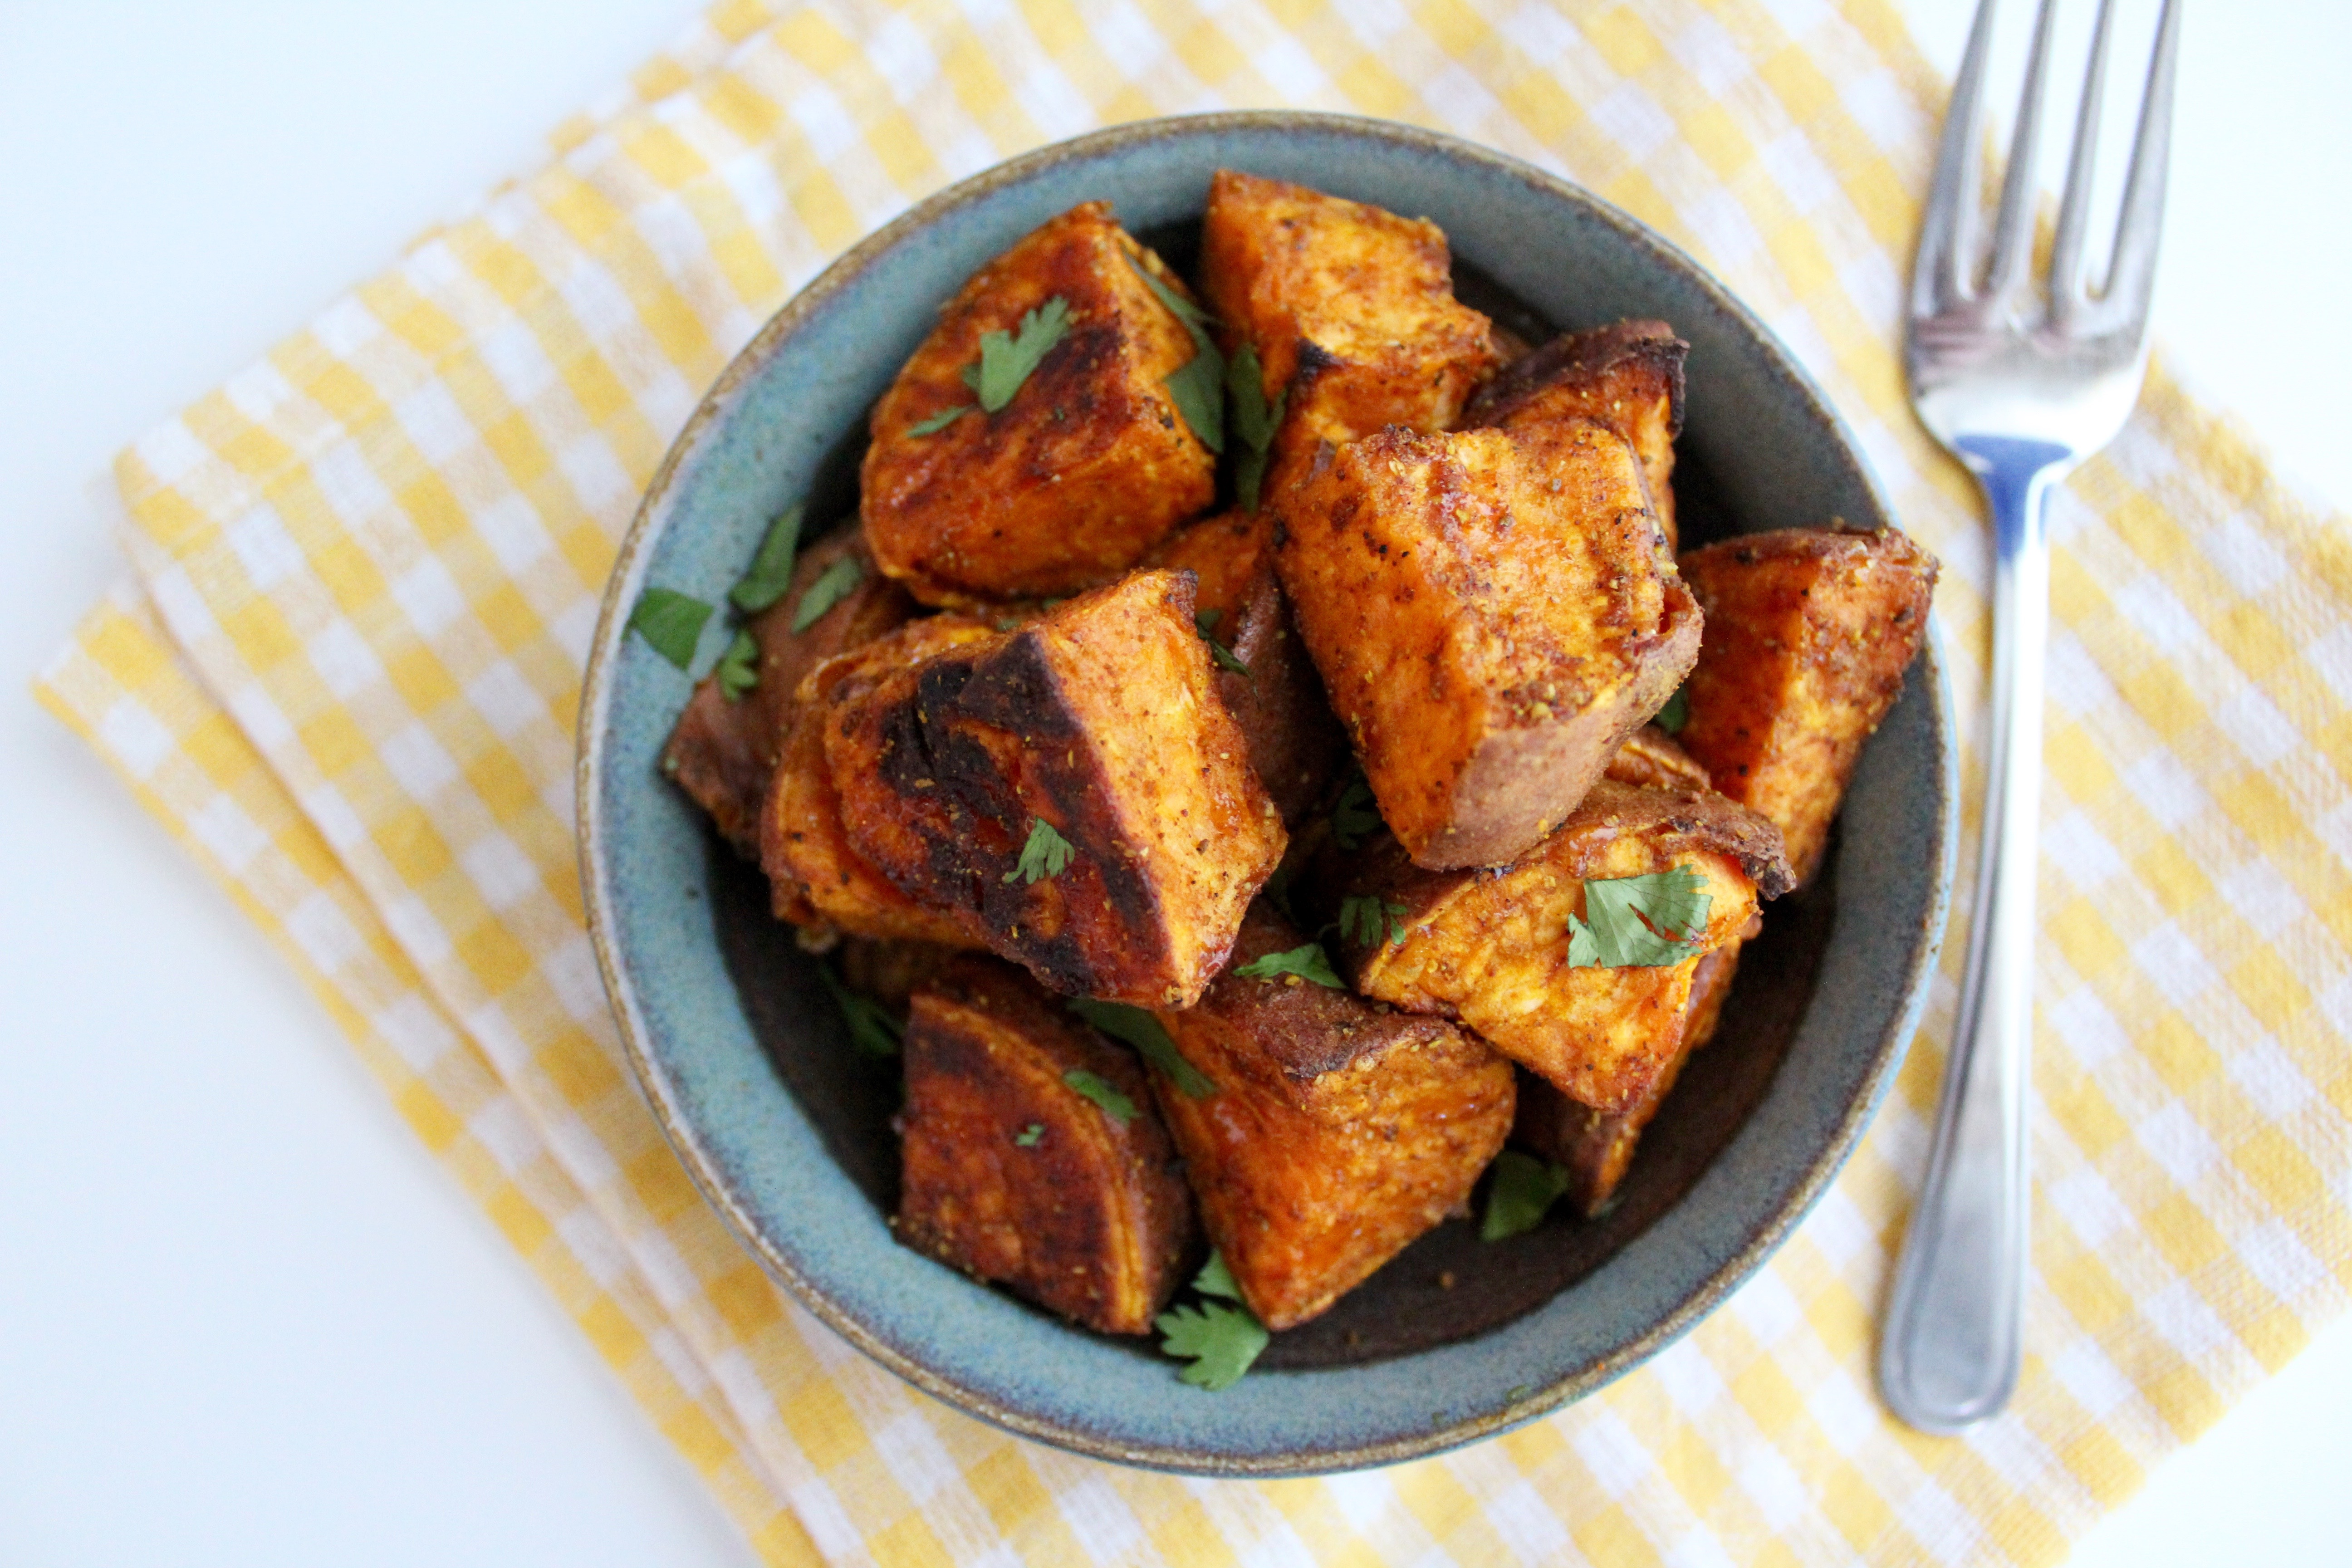 YUM! These Spicy Curry Roasted Sweet Potatoes are unreal!! The best sweet and spicy dish!